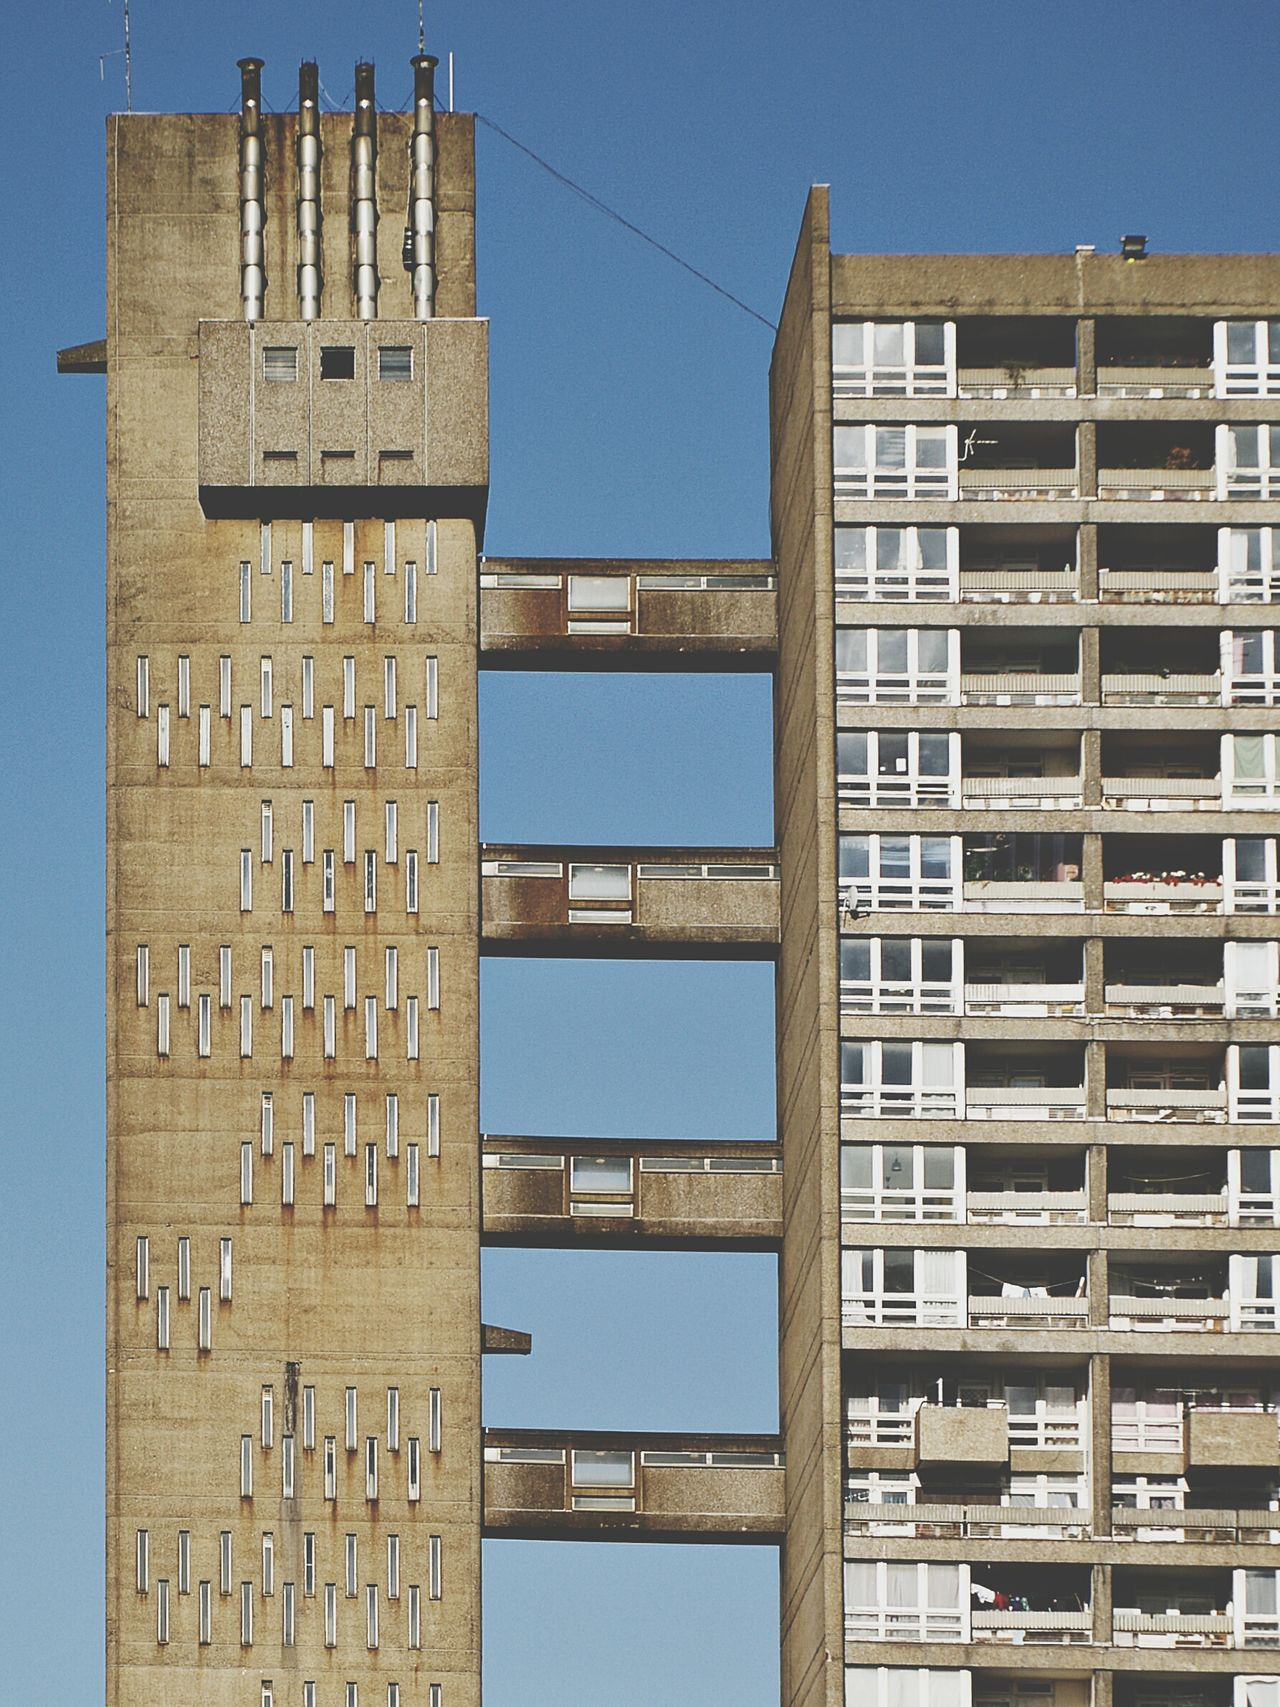 Architecture building exterior tower built structure Sunny outdoors Cityscape urban skyline concrete jungle concrete postmodern architecture housing estate postmodernism Architecture London trellick tower